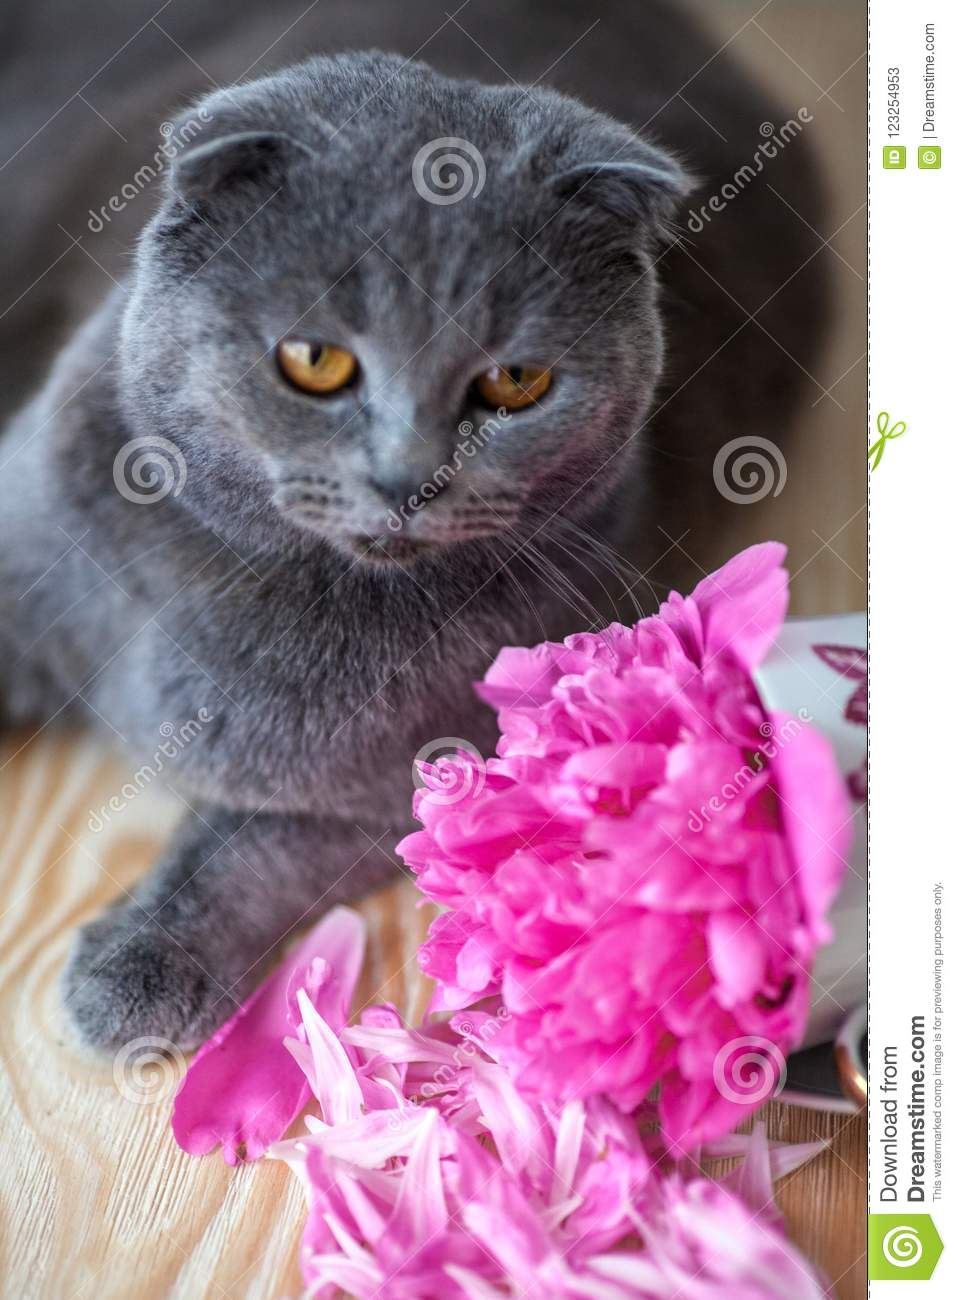 Cat and flowers stock image image of breed flower 123254953 download cat and flowers stock image image of breed flower 123254953 mightylinksfo